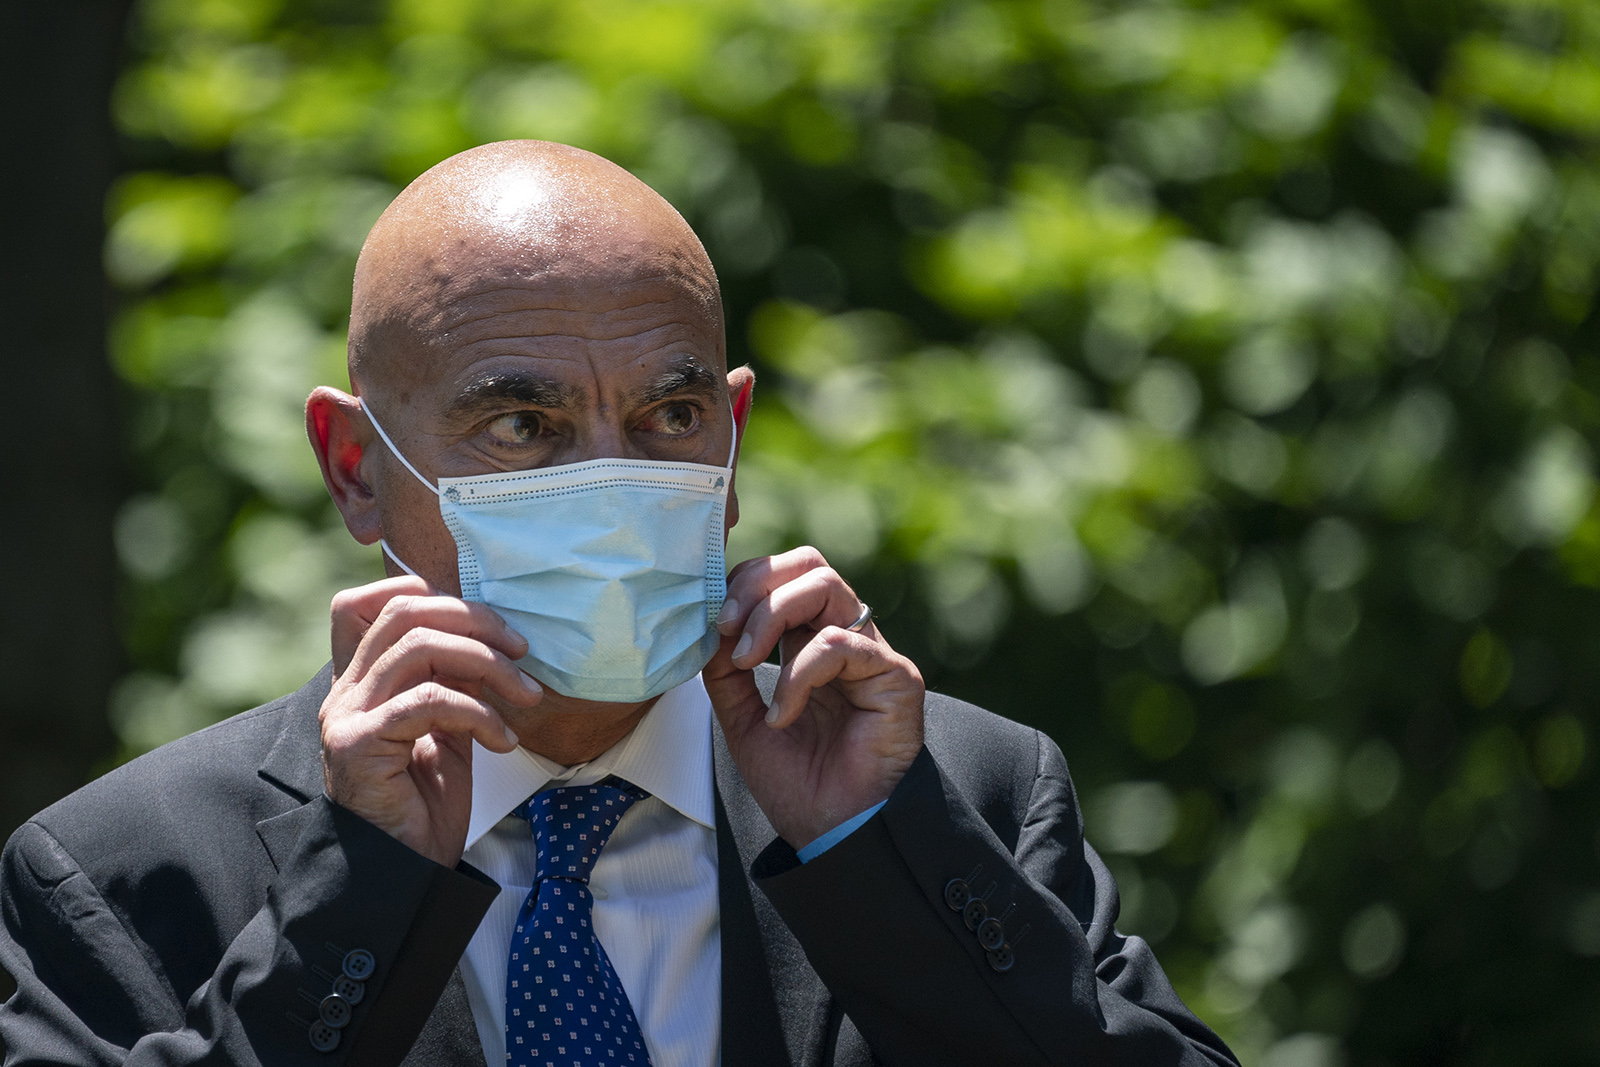 Moncef Slaoui listens as President Donald Trump delivers remarks about coronavirus vaccine development in the Rose Garden on May 15, in Washington.